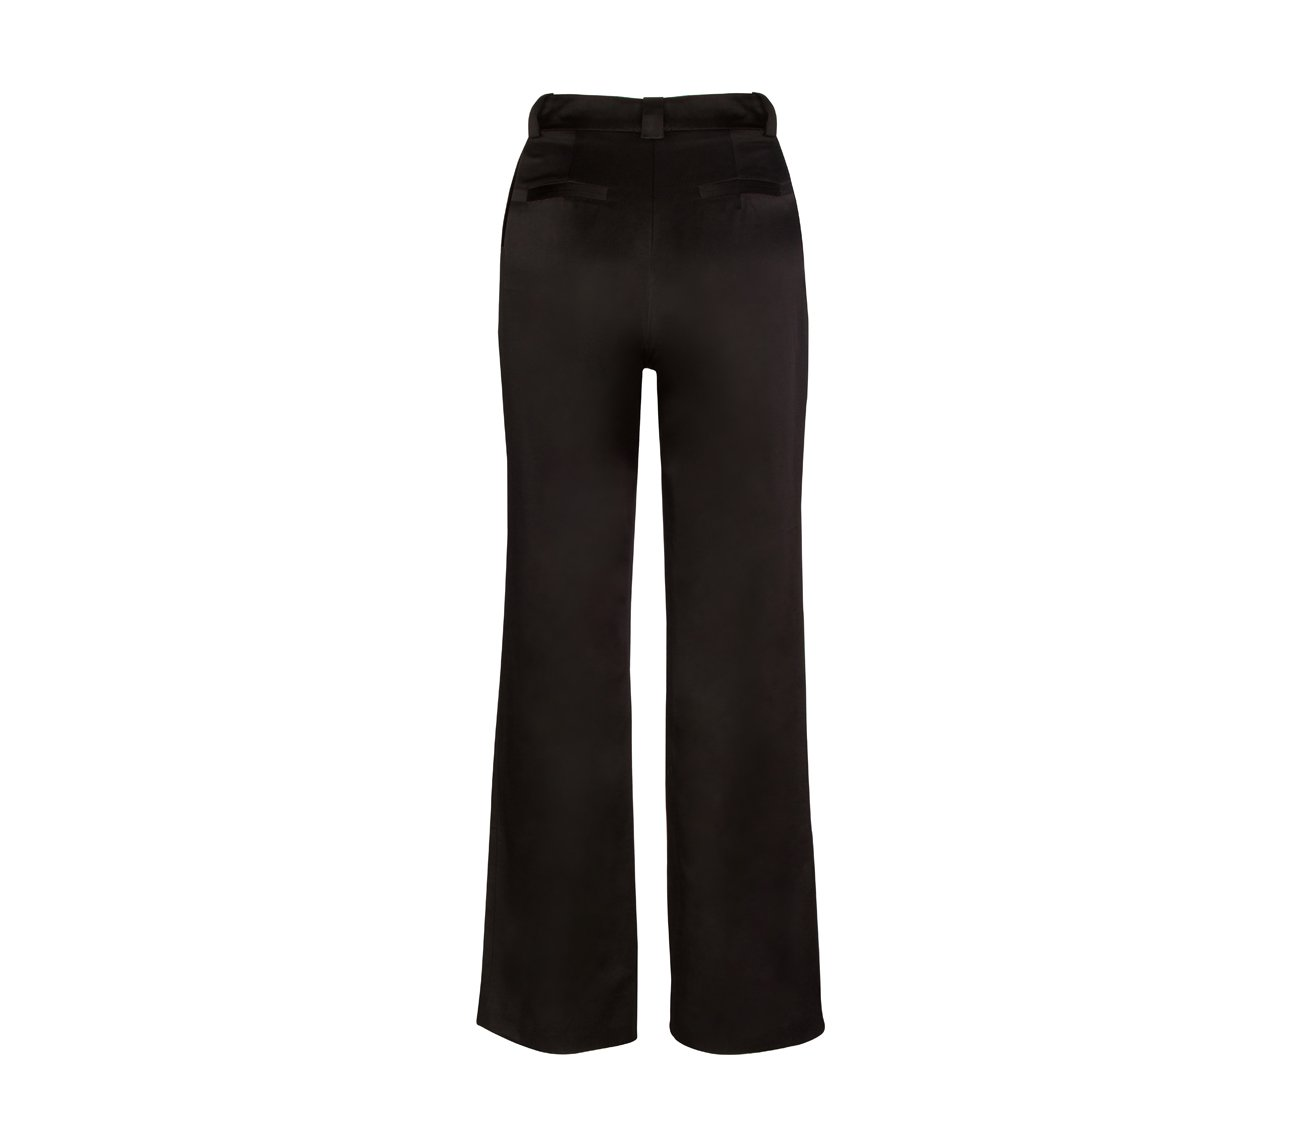 SKYE SUIT TROUSER